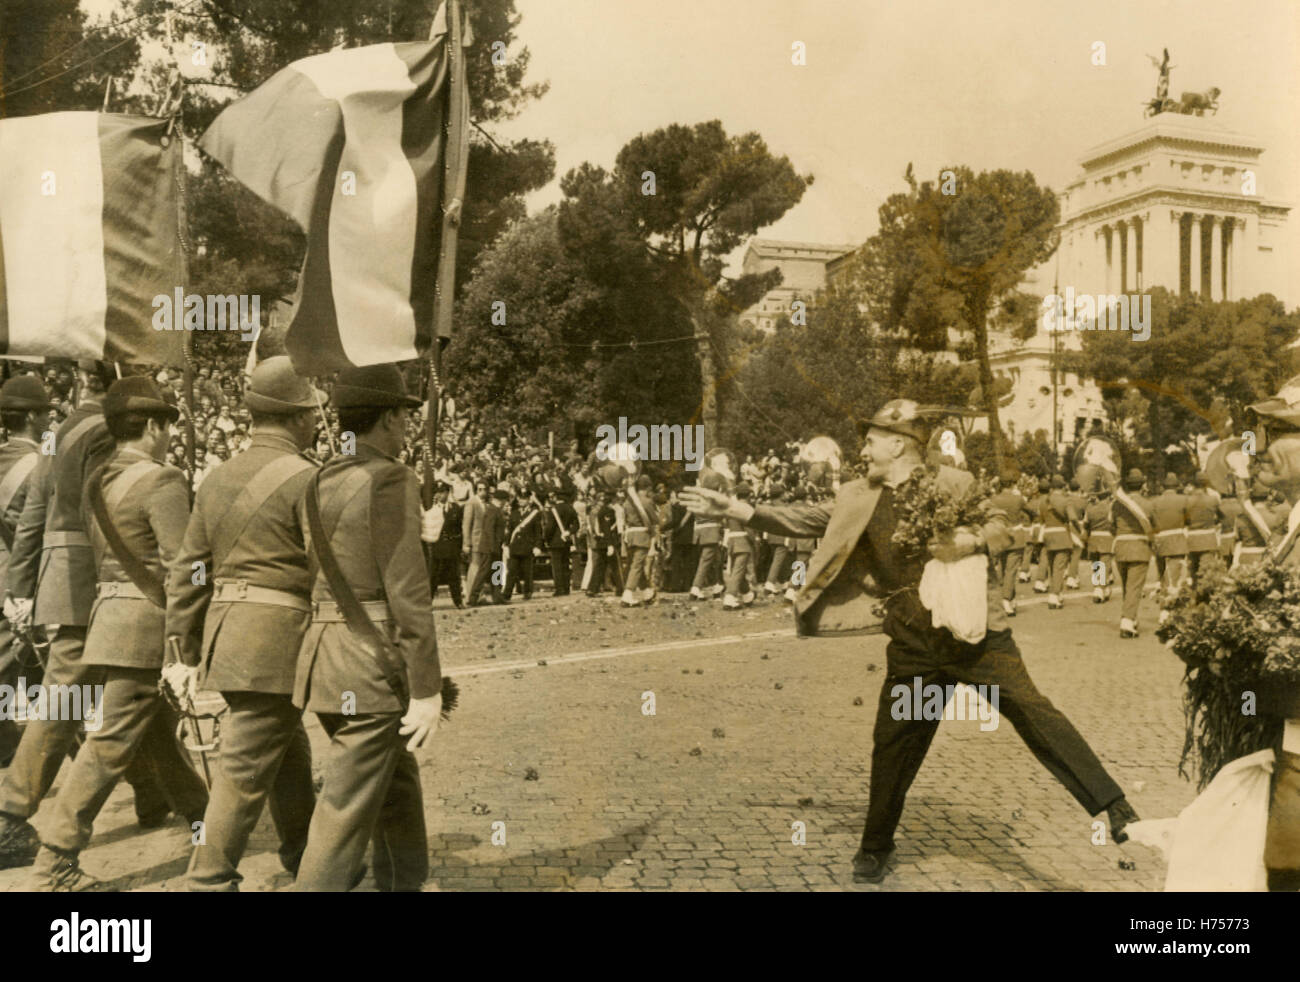 Veteran alpine soldier throws flowers to the Italian Army troops, Rome, Italy 1975 - Stock Image